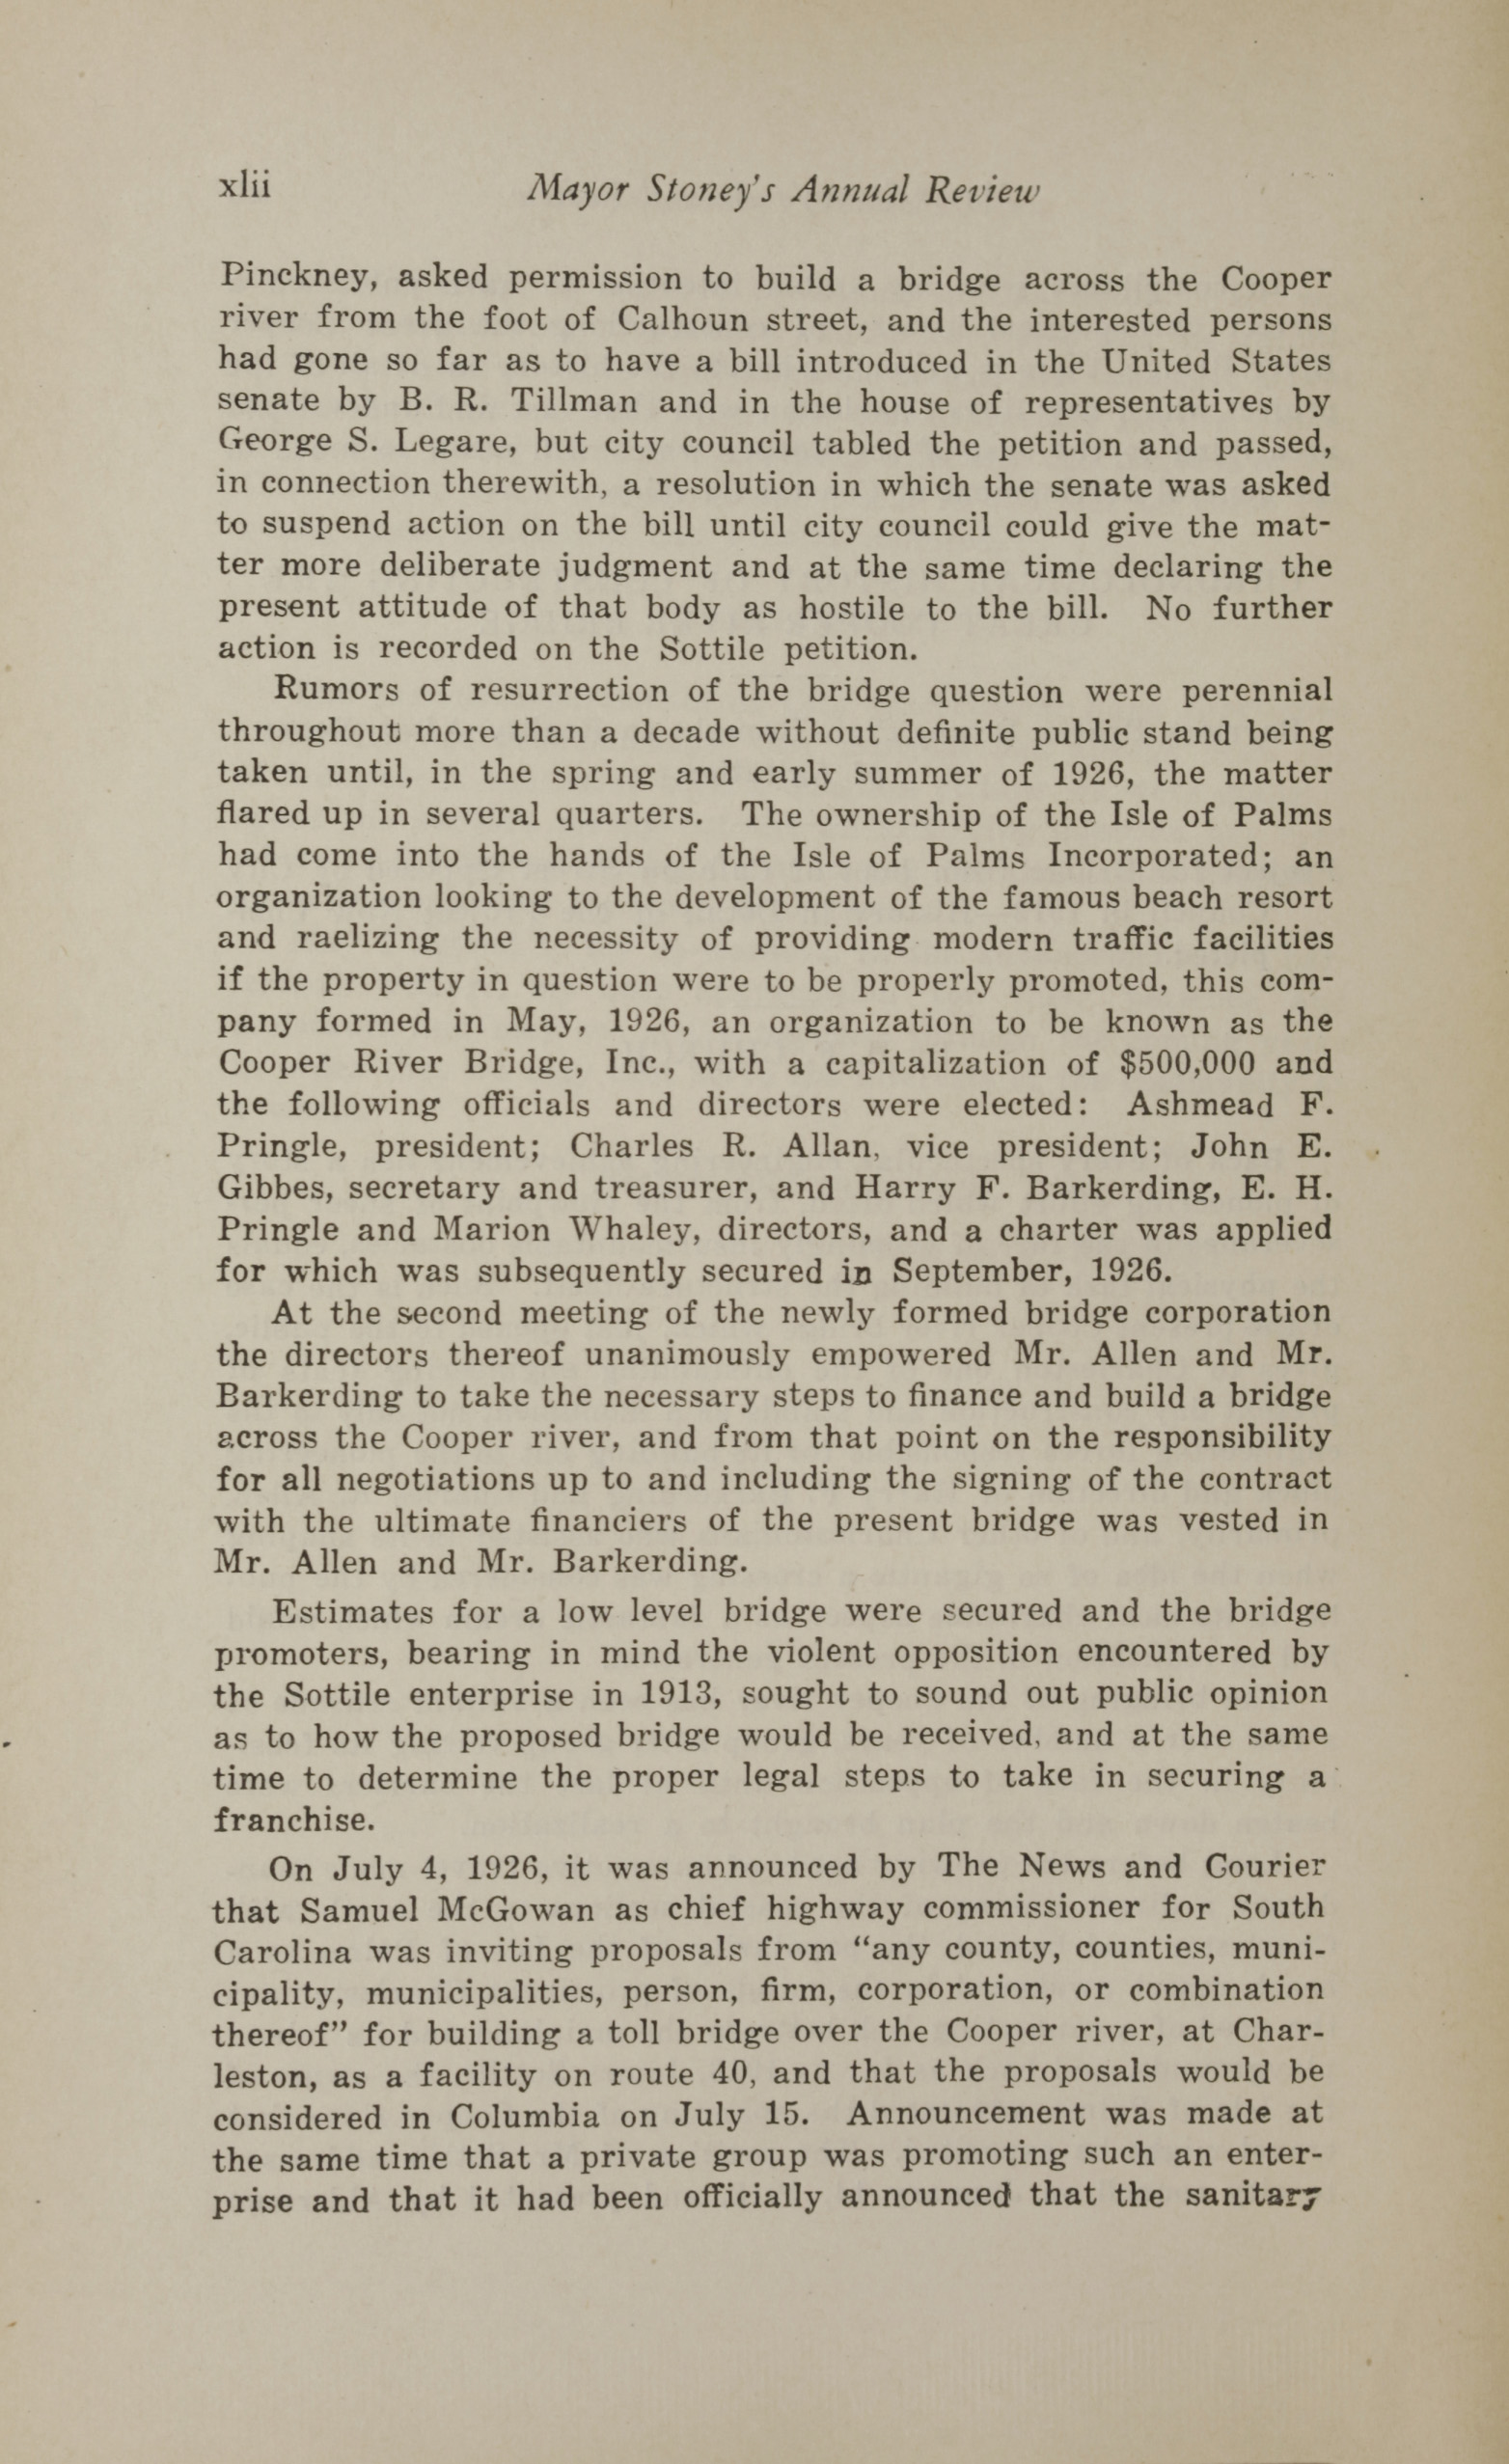 Charleston Yearbook, 1930, page xlii